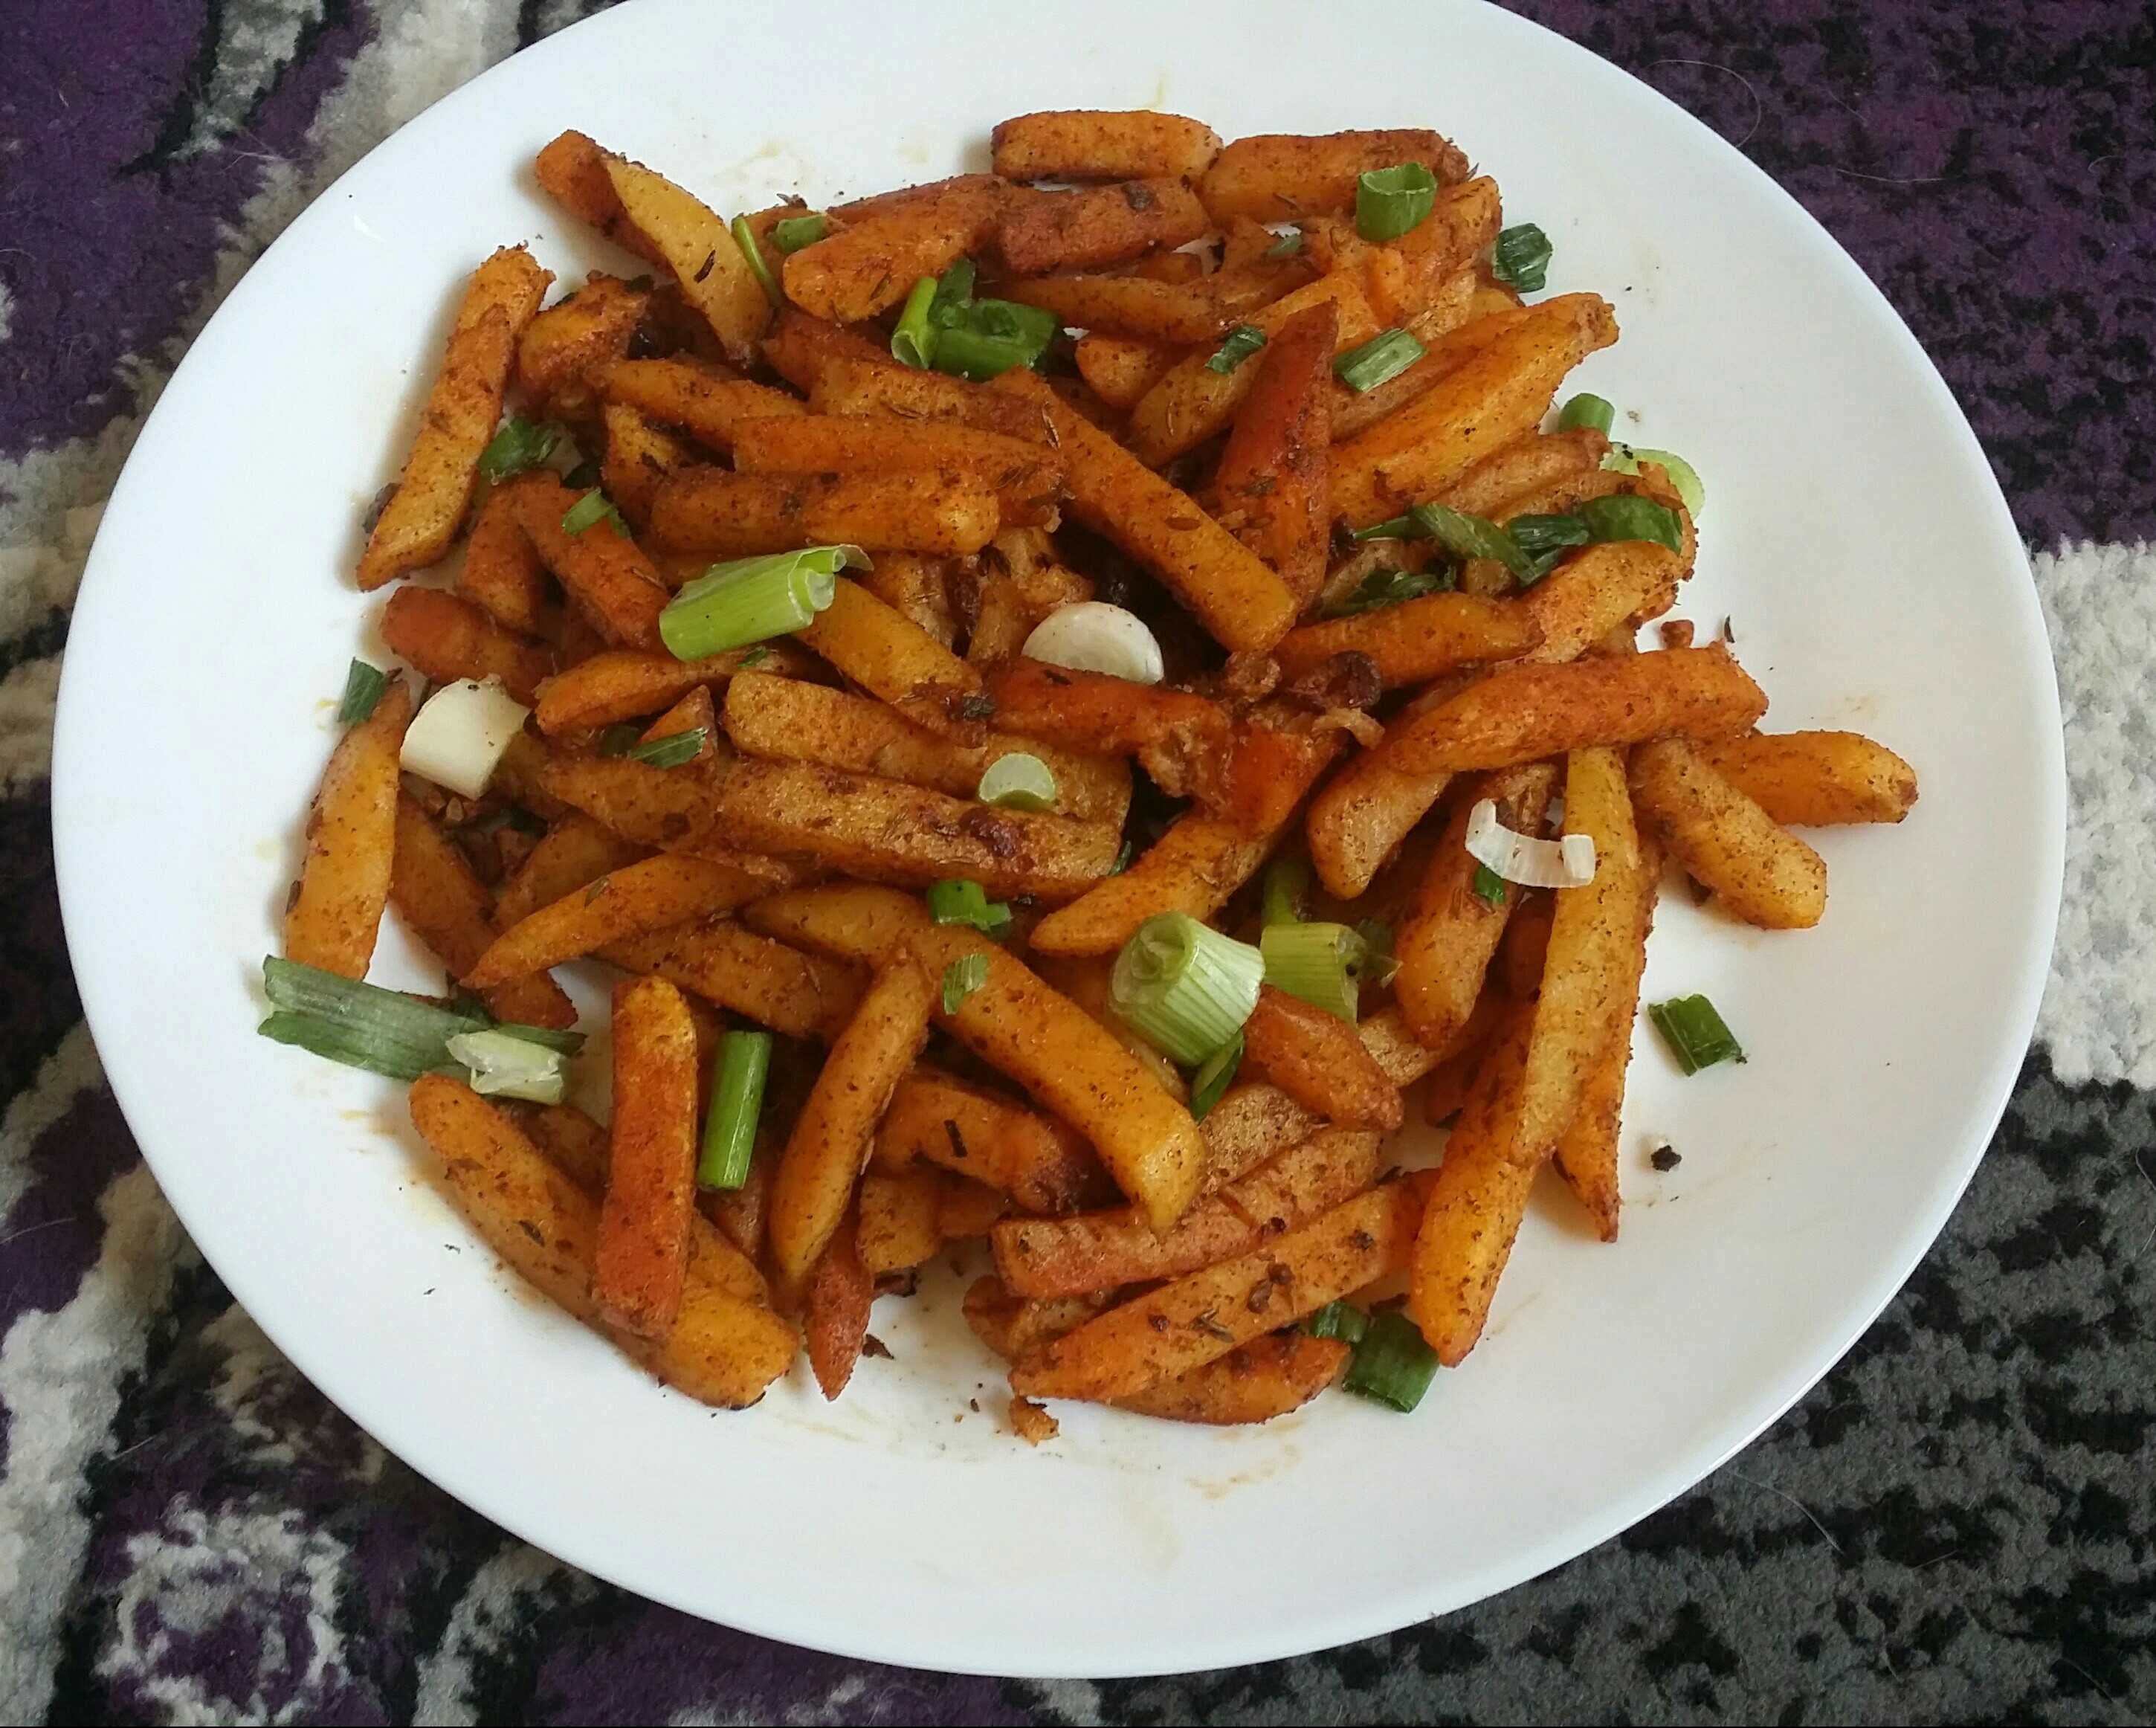 Chilli Garlic Potato Fingers